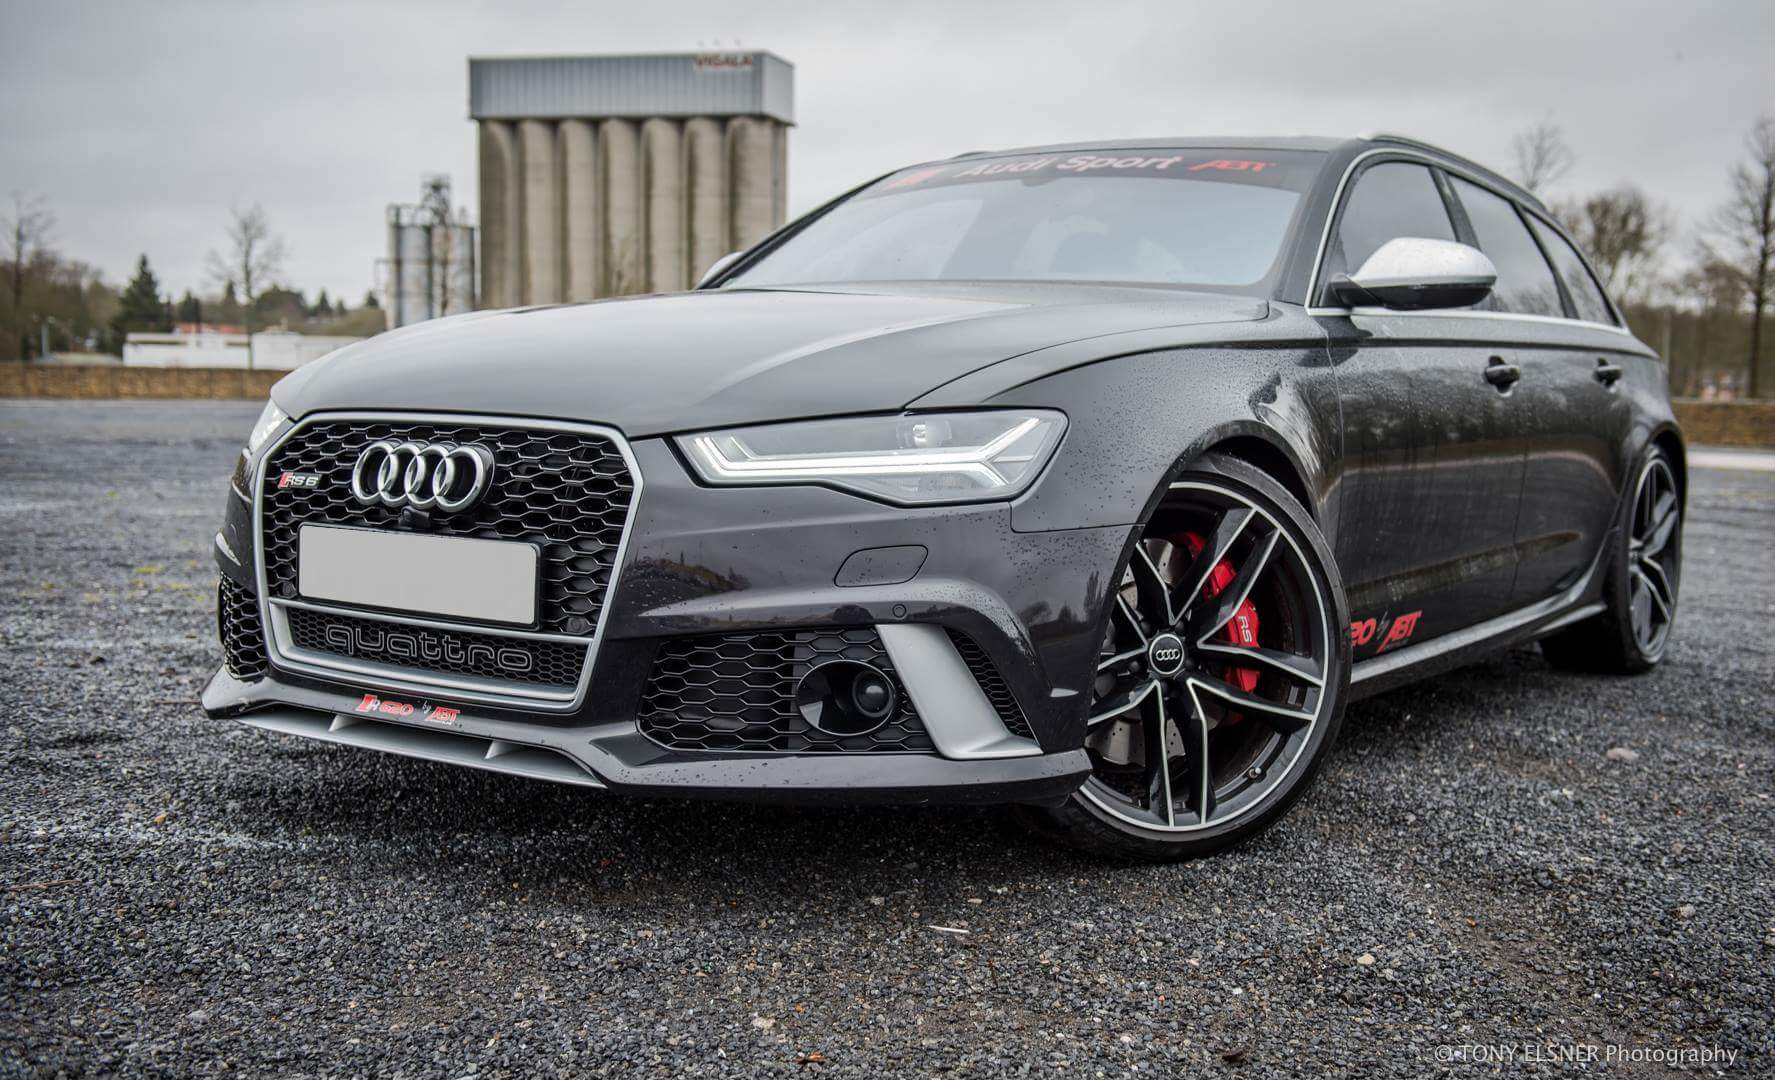 Audi RS6 - Best looking performance station wagon out there !